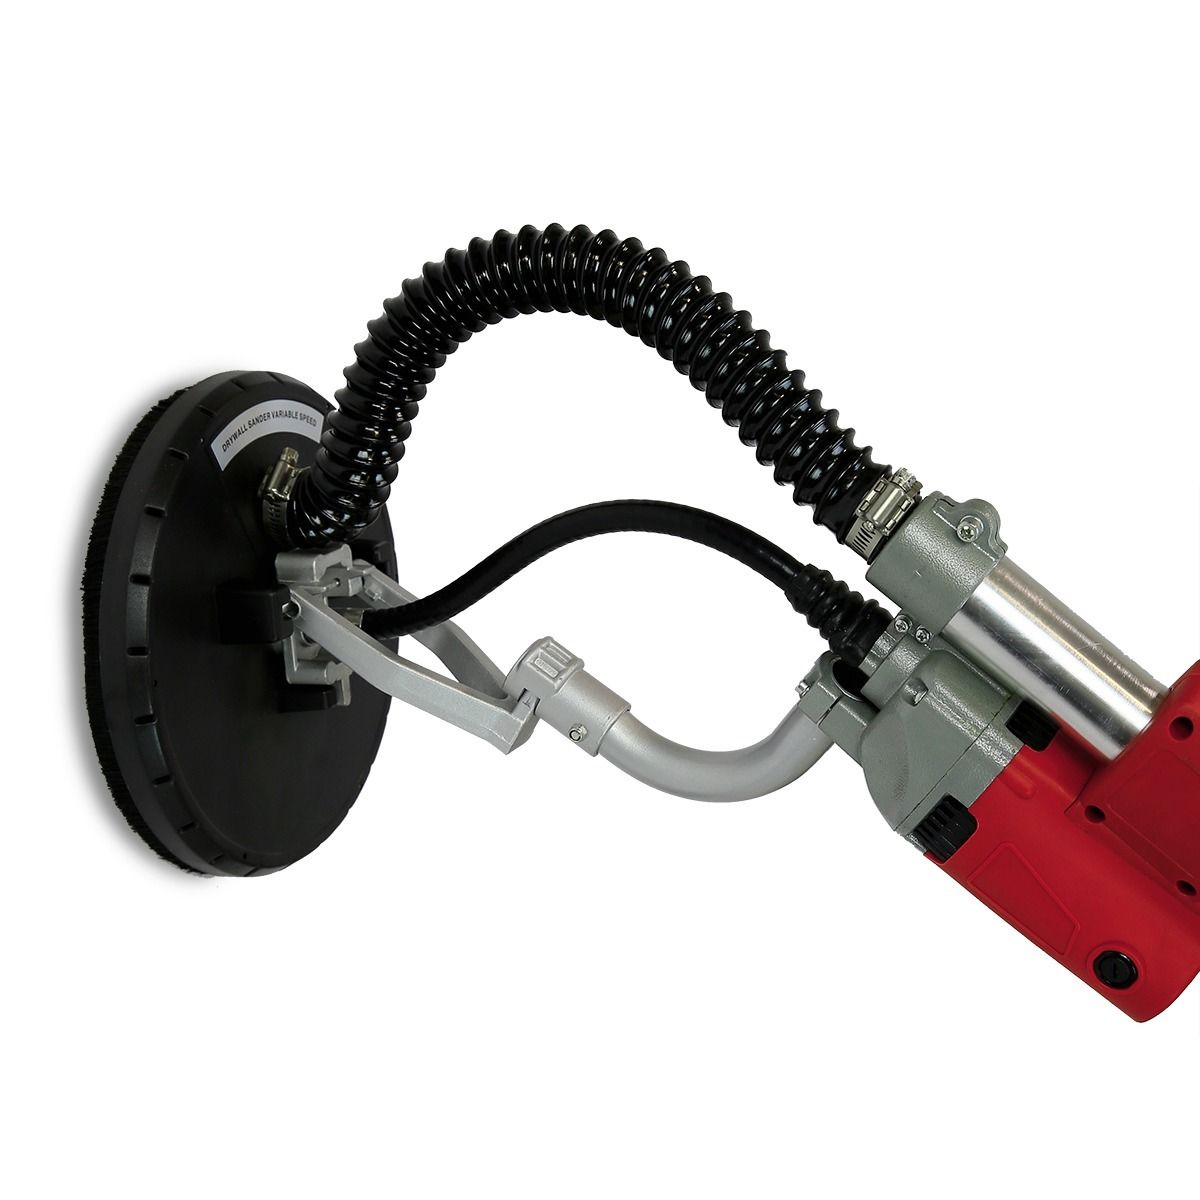 GHP 1HP 750W Electric Variable Speed Drywall Sander Wall ...